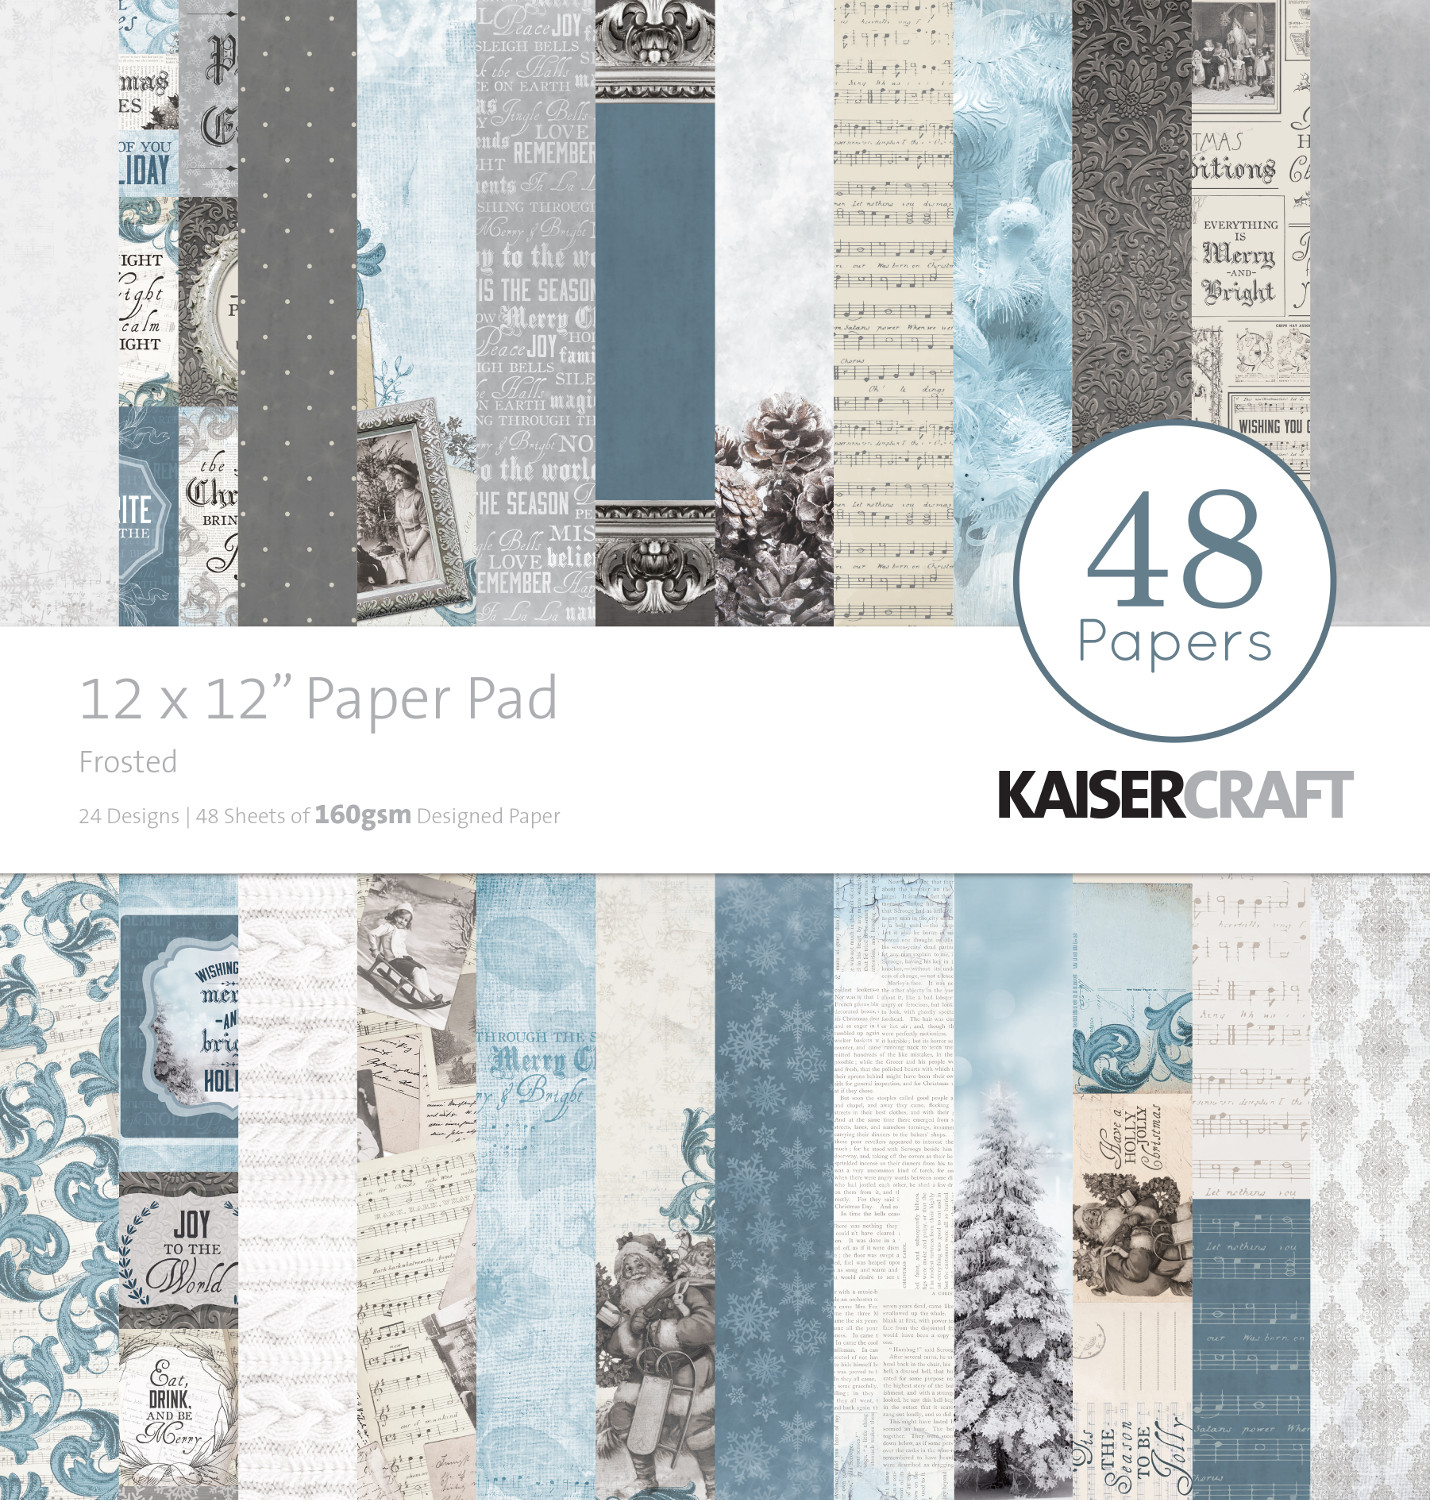 Kaisercraft Frosted And Silent Night